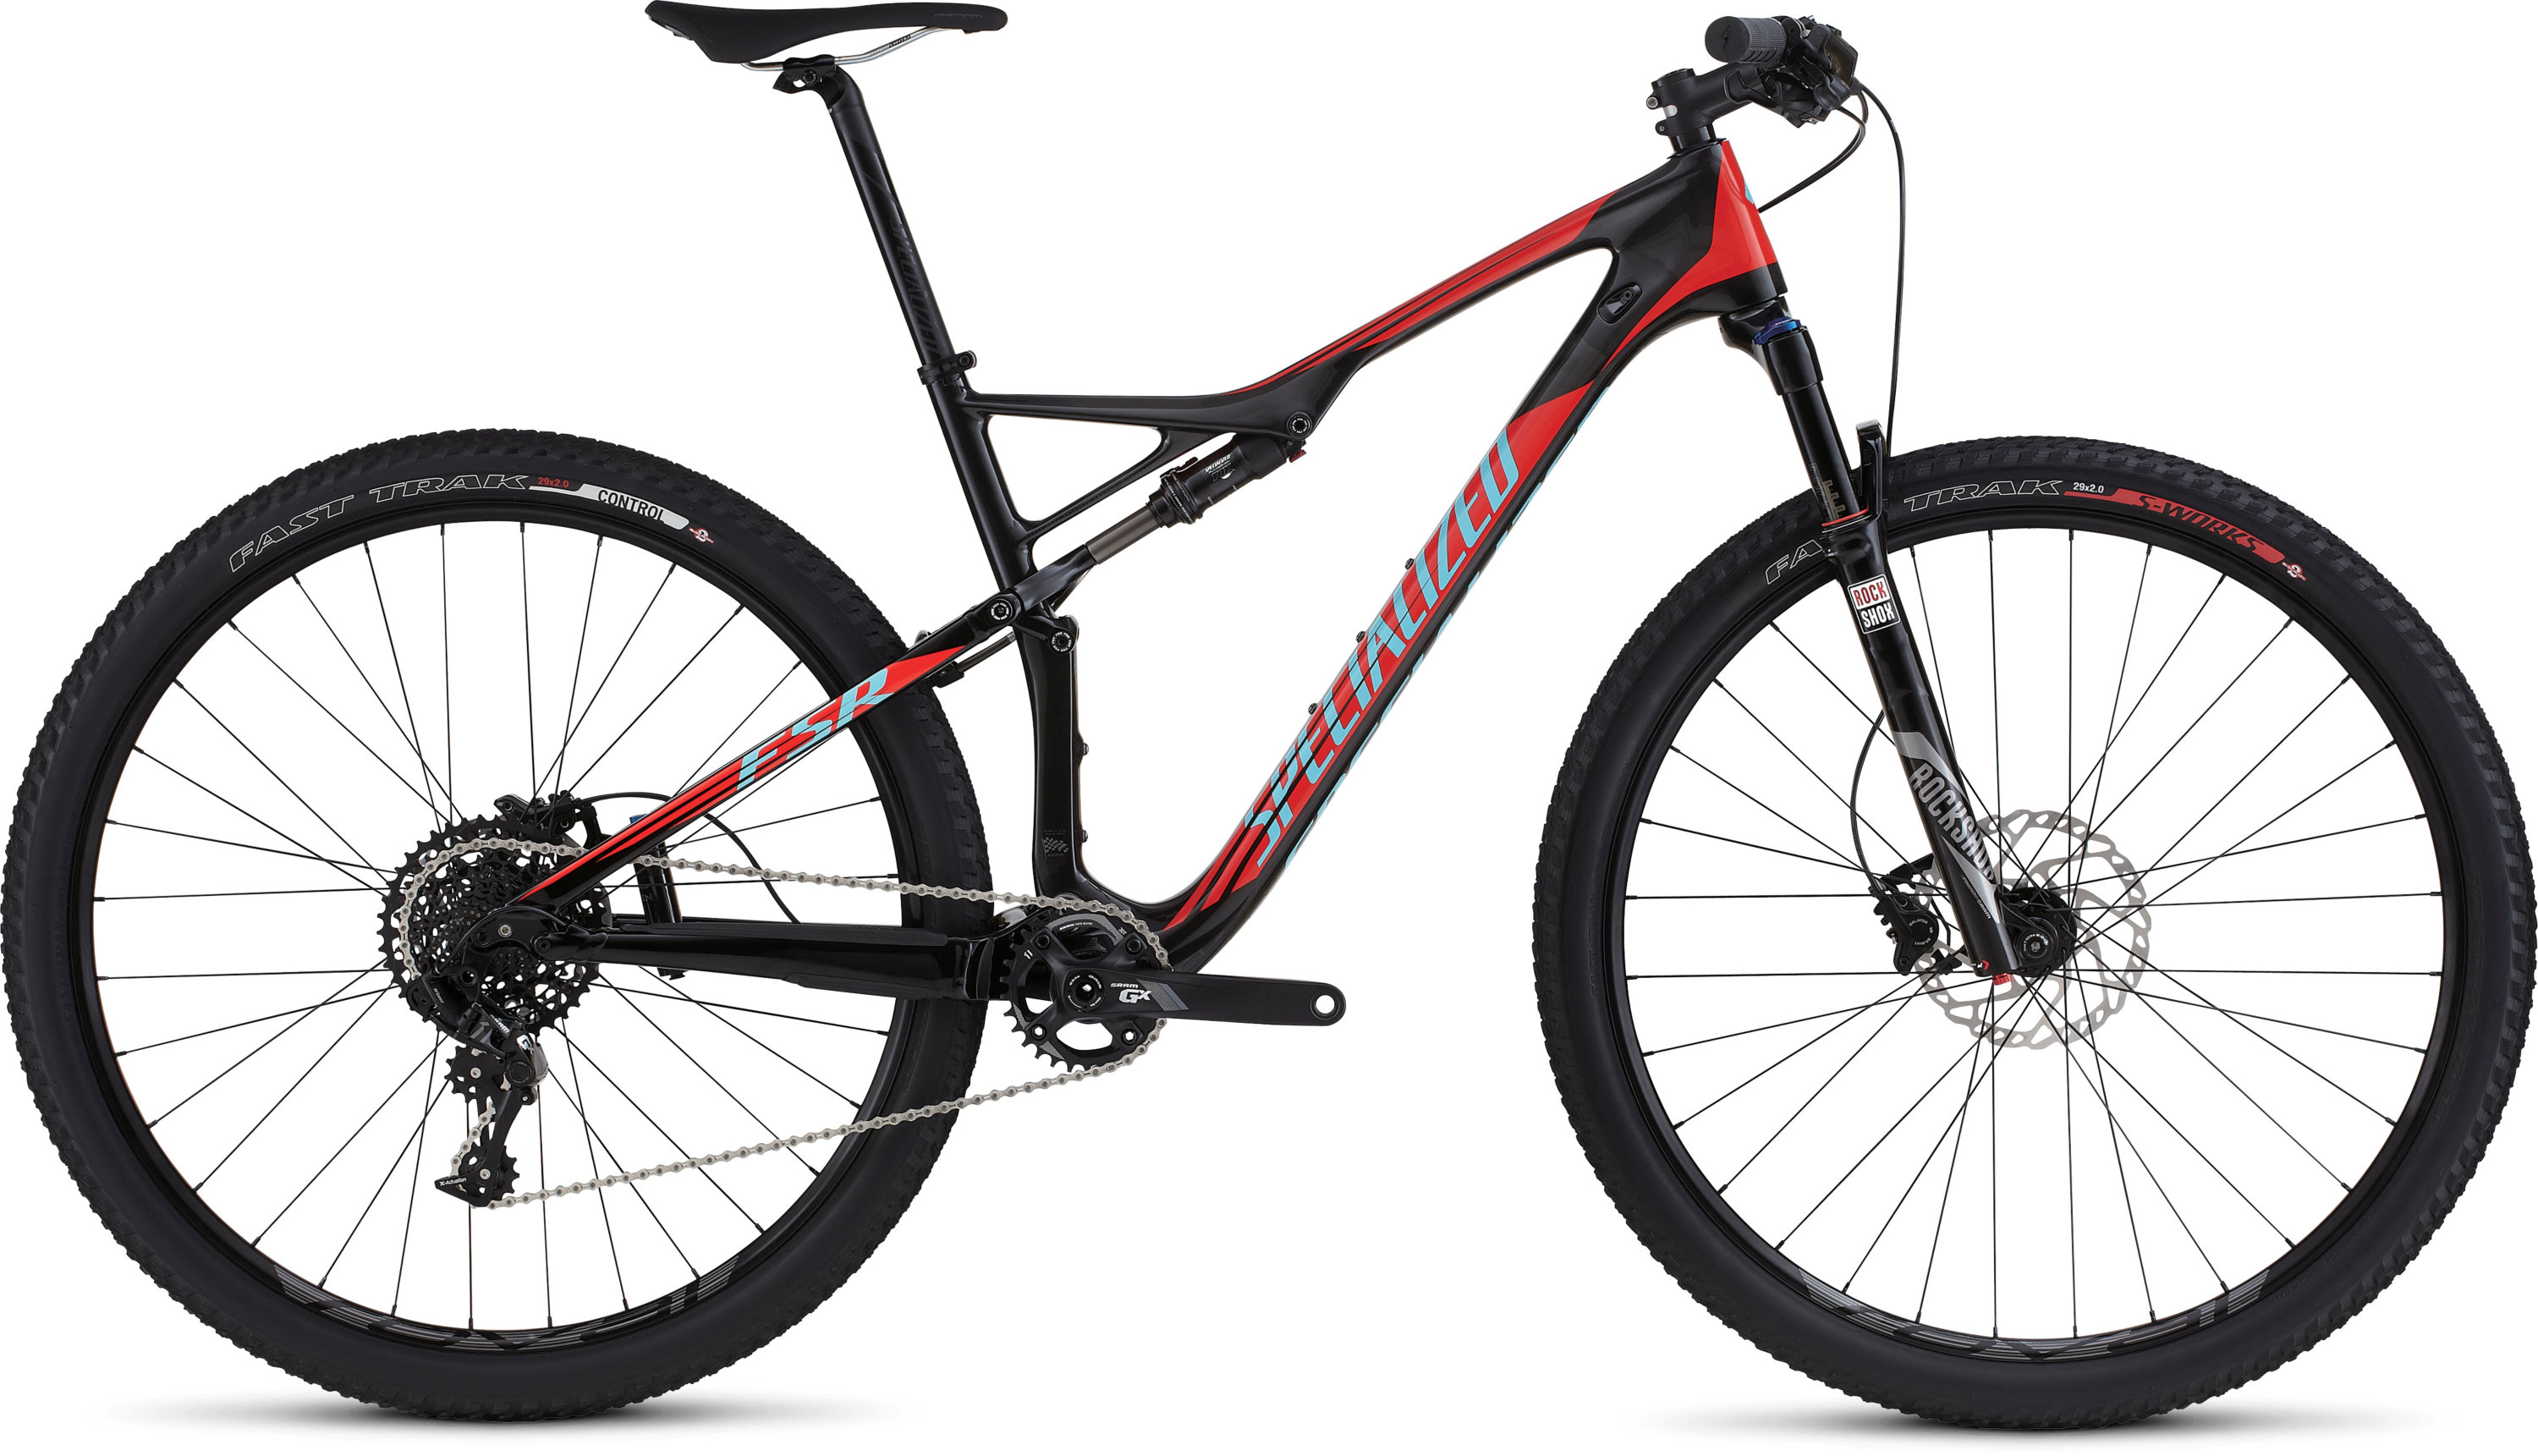 SPECIALIZED EPIC FSR COMP CARBON WC 29 CARB/RKTRED/LTBLU S - SPECIALIZED EPIC FSR COMP CARBON WC 29 CARB/RKTRED/LTBLU S